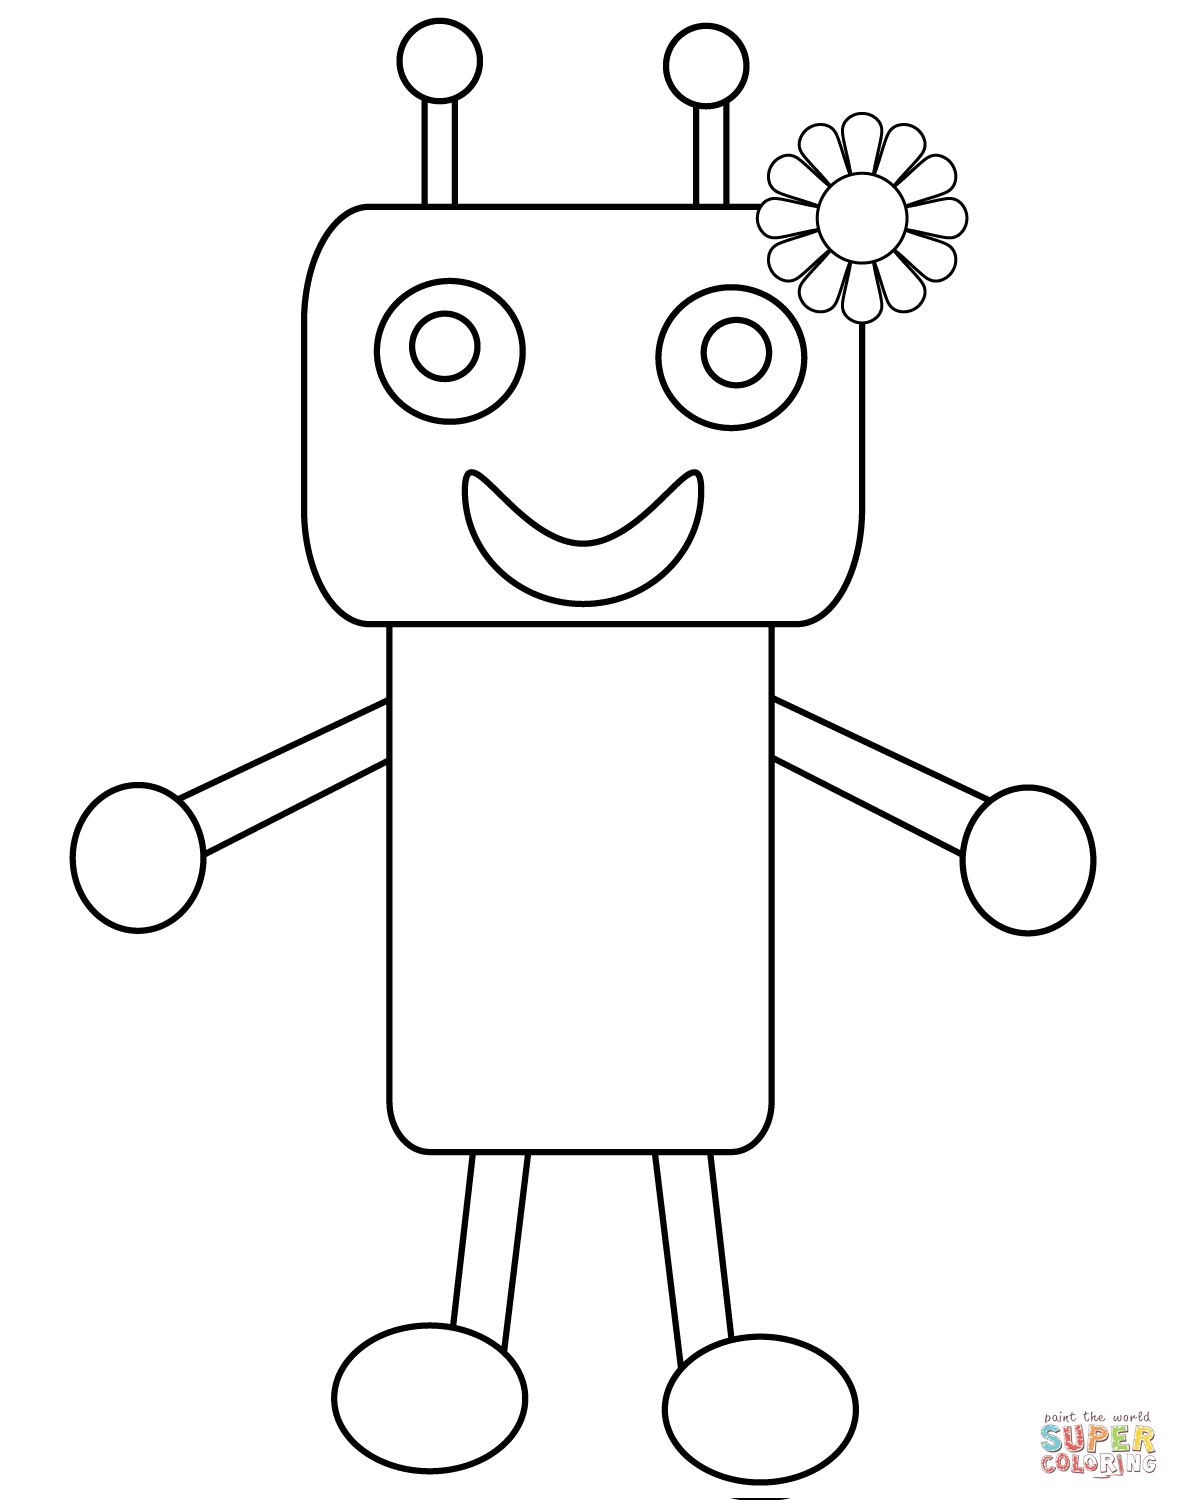 Cute Robot Drawing at GetDrawings.com | Free for personal use Cute ...